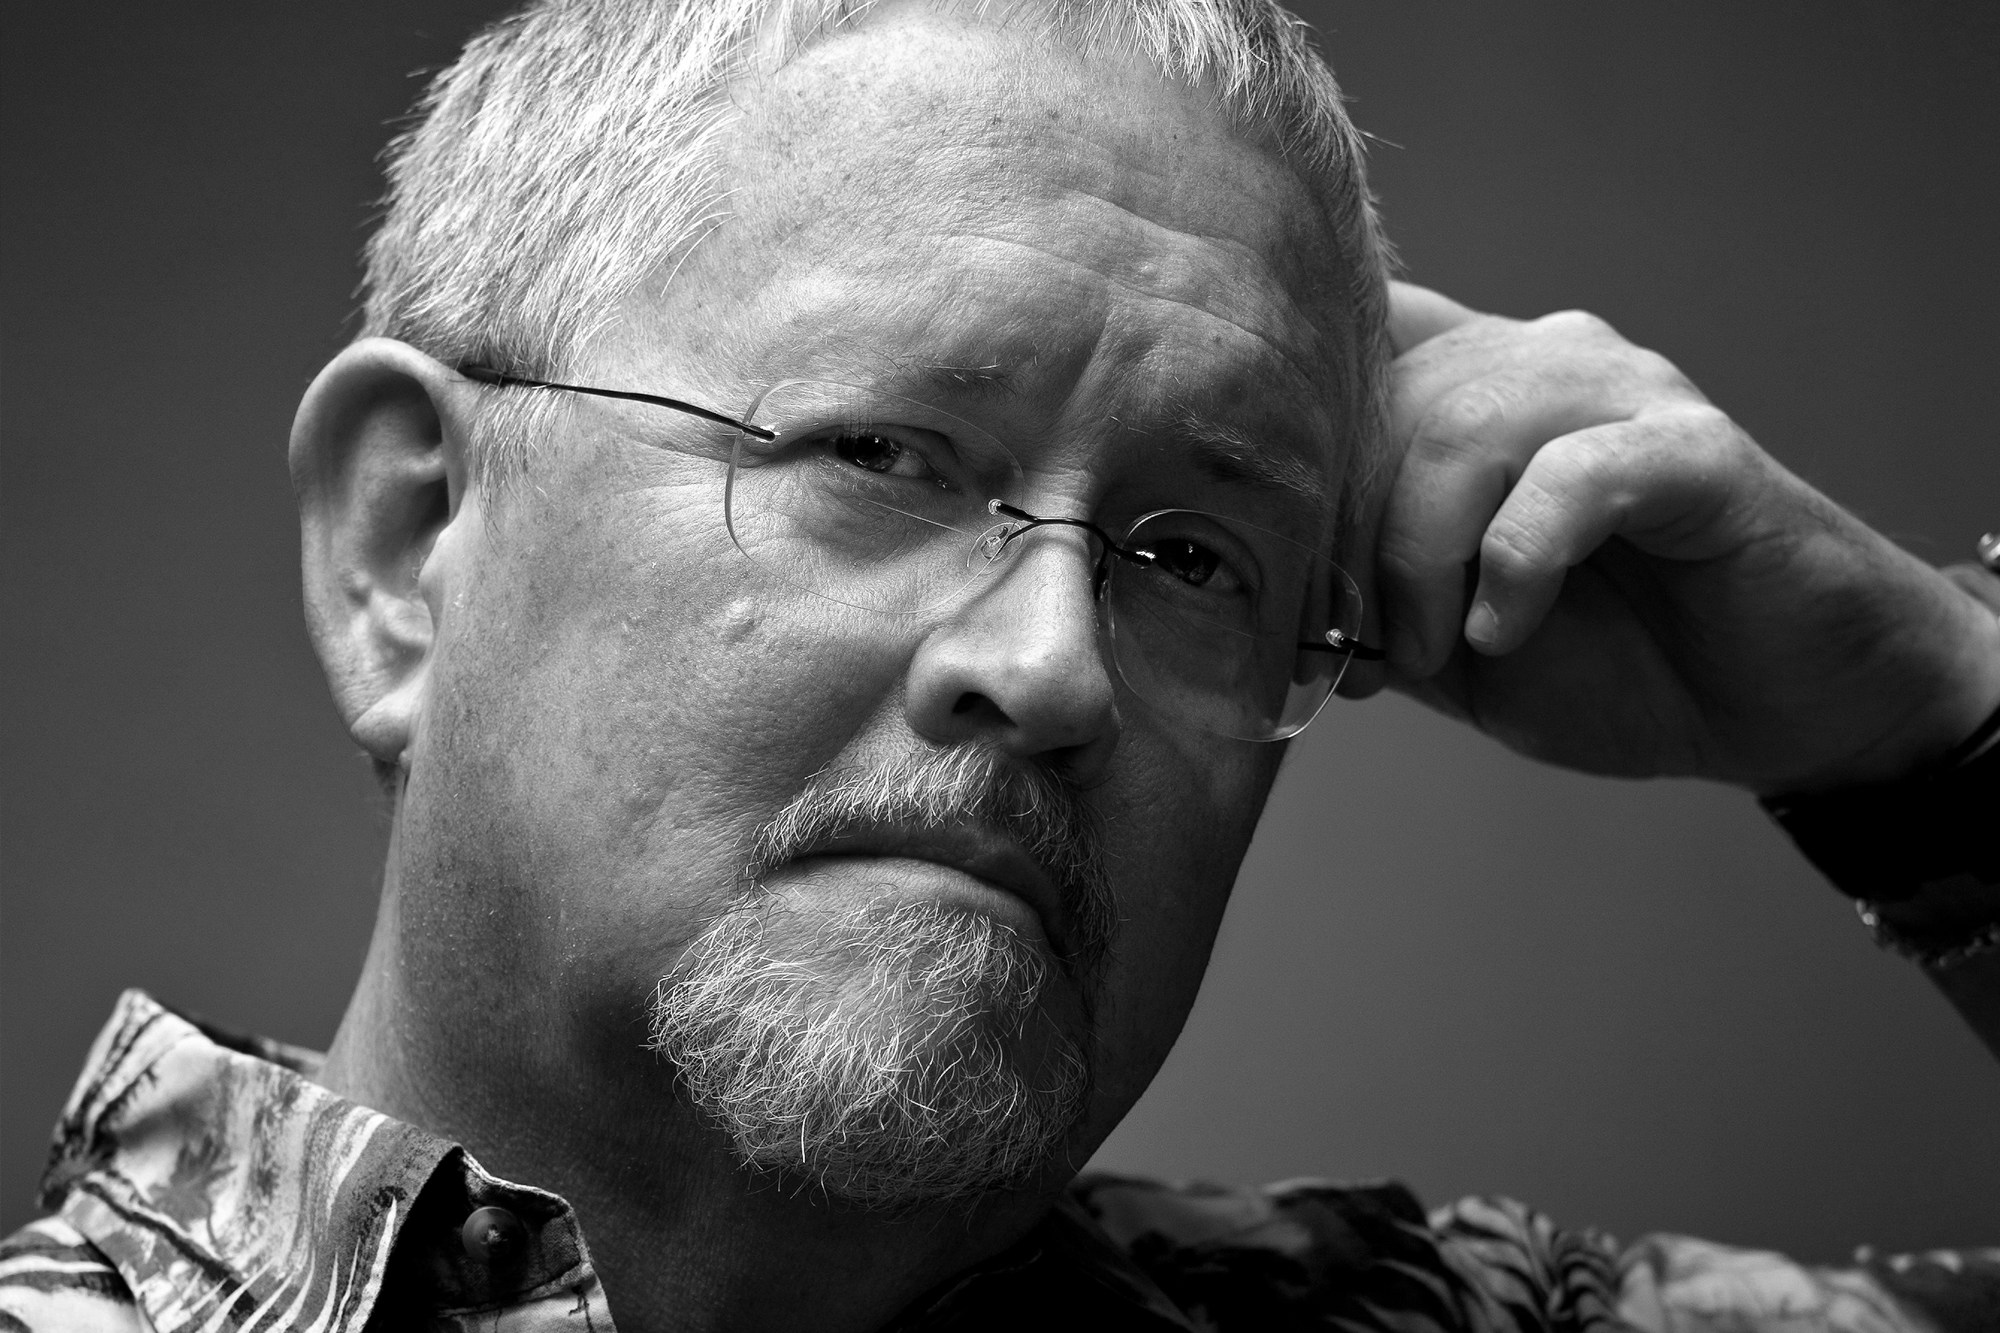 orson scott card essay Now orson scott card in the essay, which was published on card's civilisation watch blog and titled unlikely events.